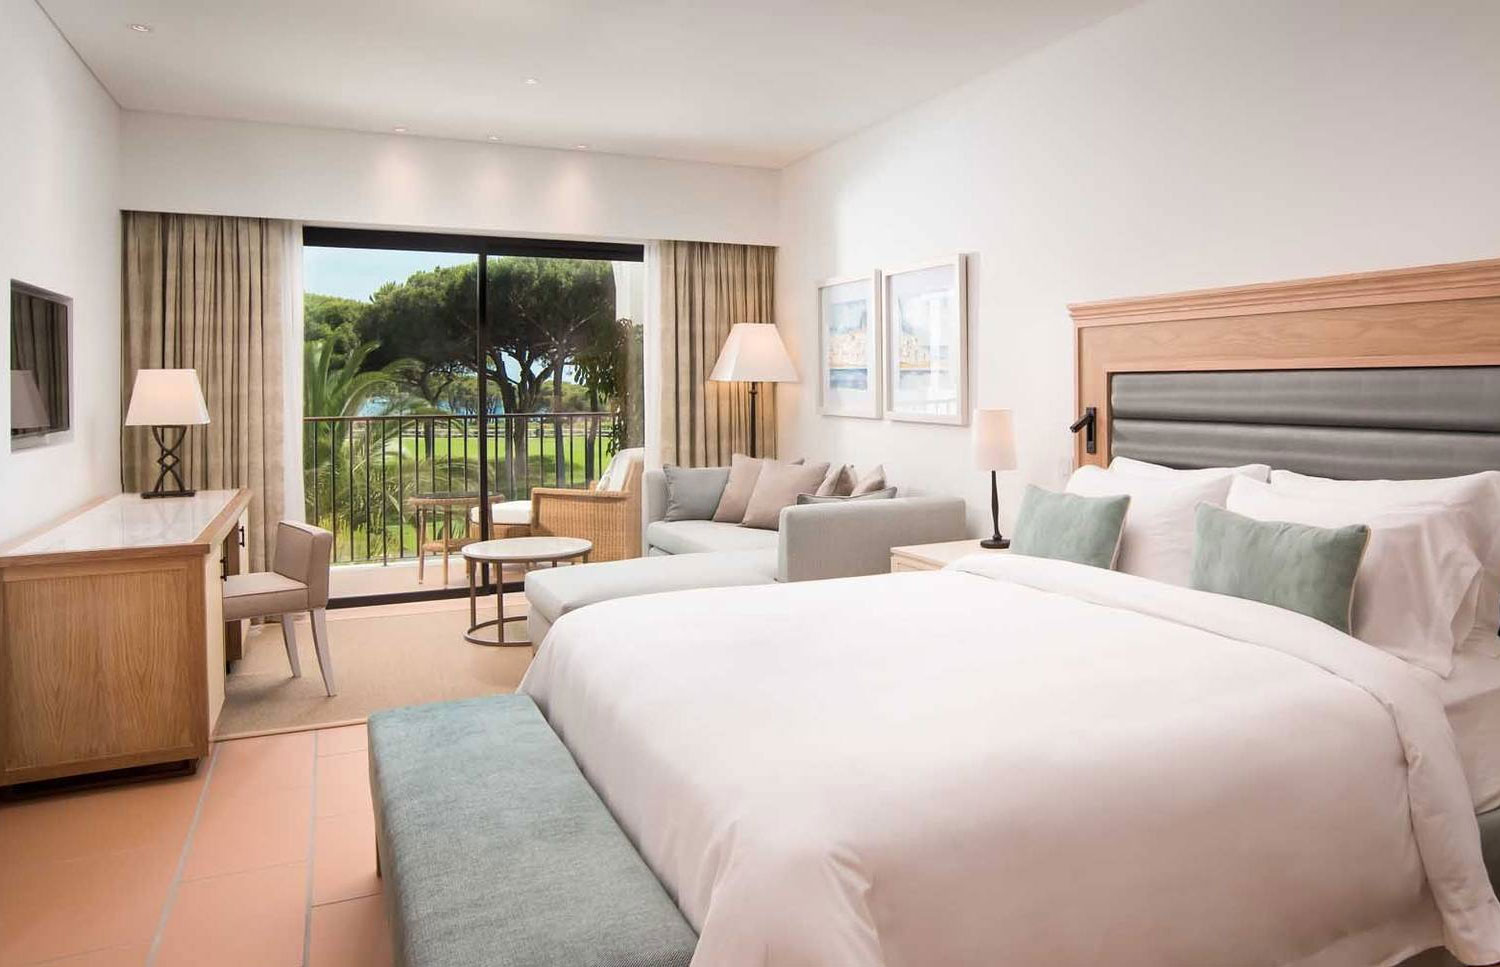 Pine Cliffs Hotel Algarve - Bedroom